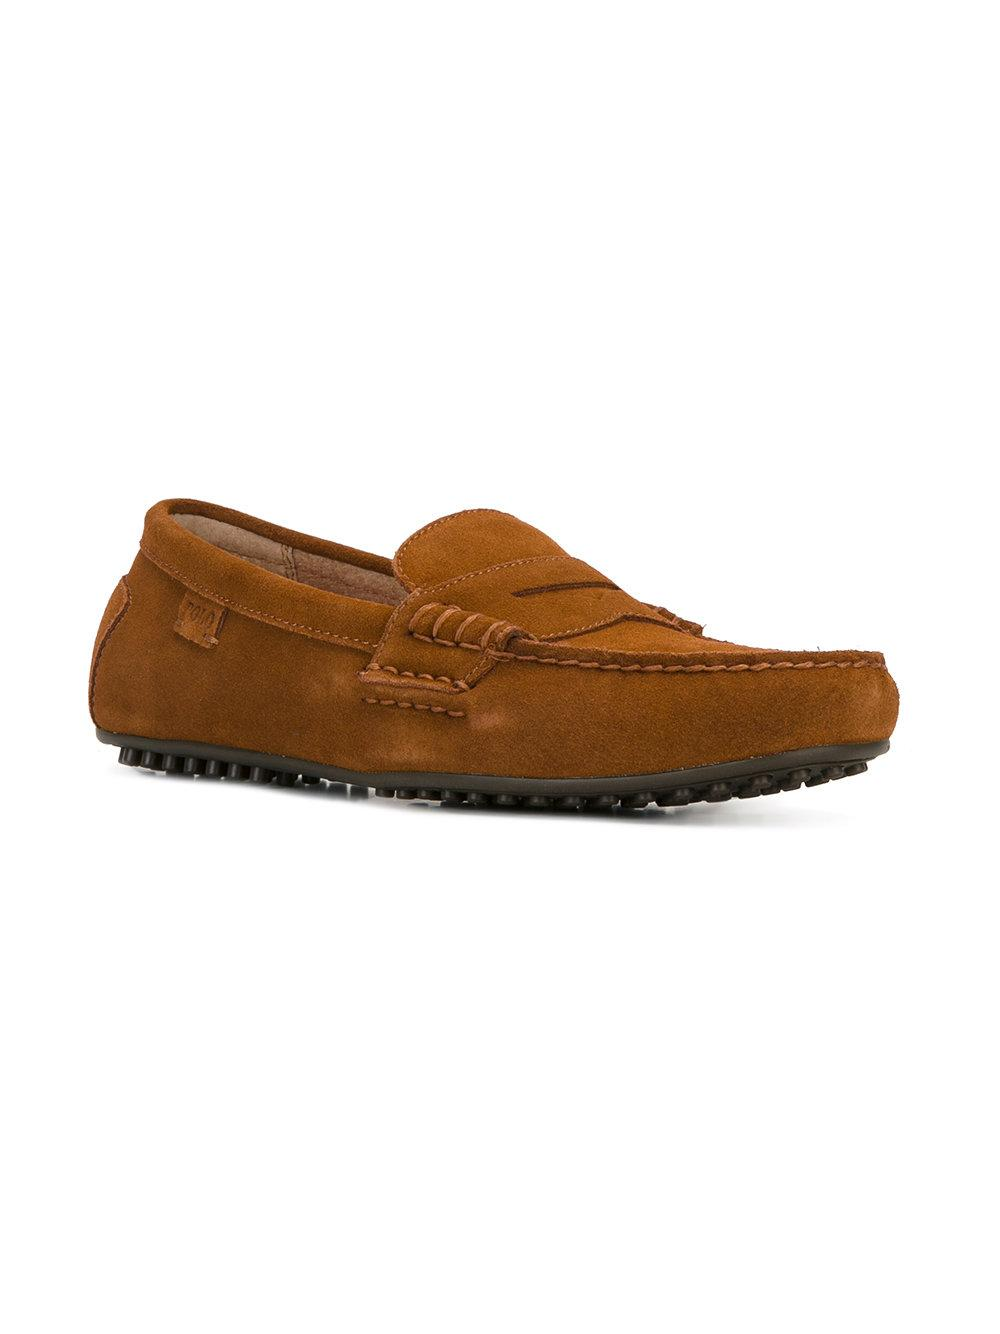 ugg penny loafers